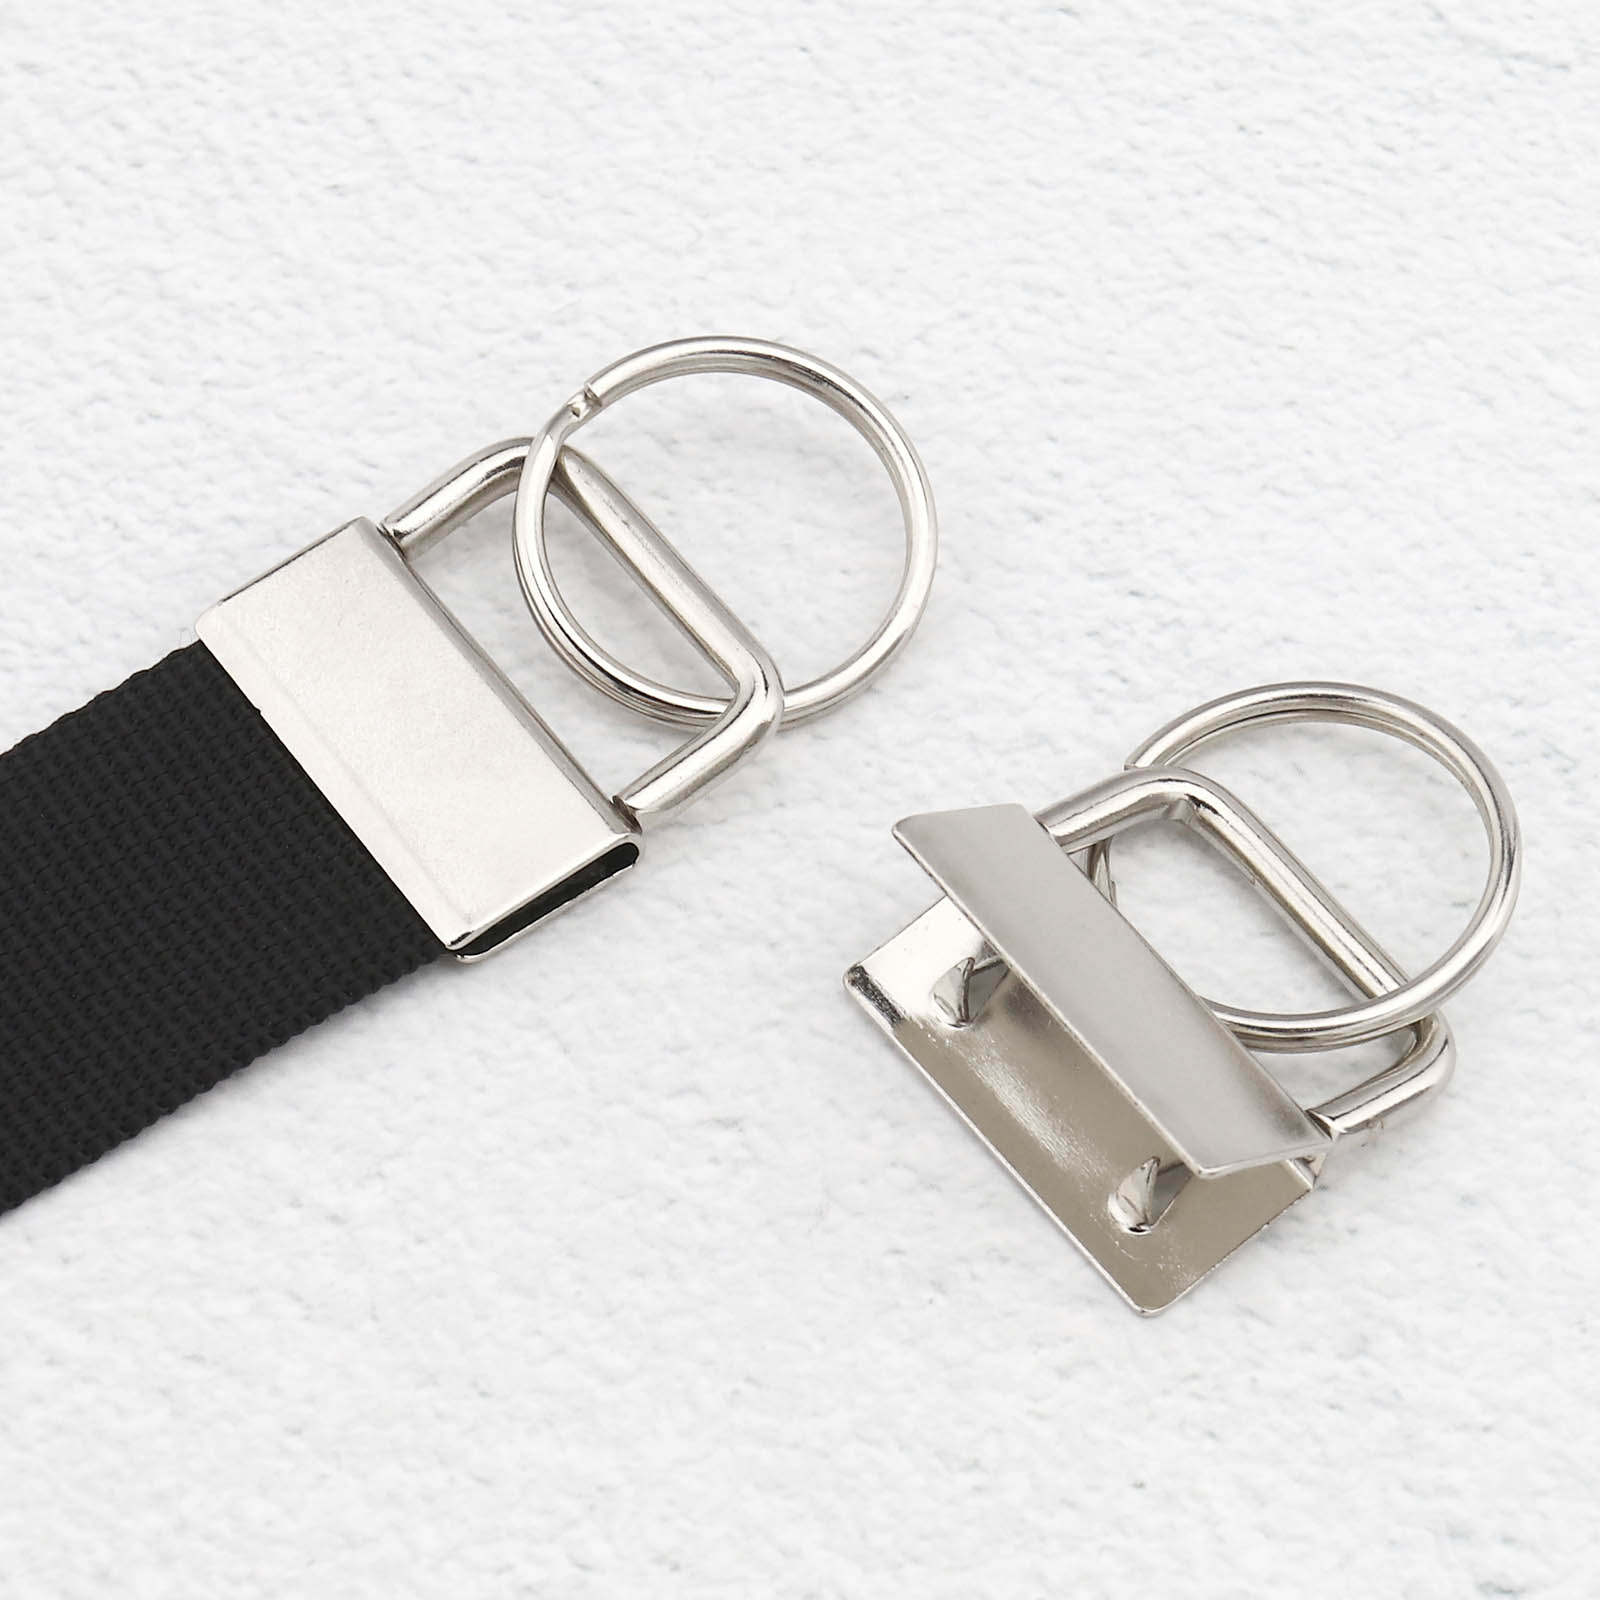 10Pcs//Set Key Fob Hardware keychain Split Ring Wrist Wristlets Cotton Tail Clip